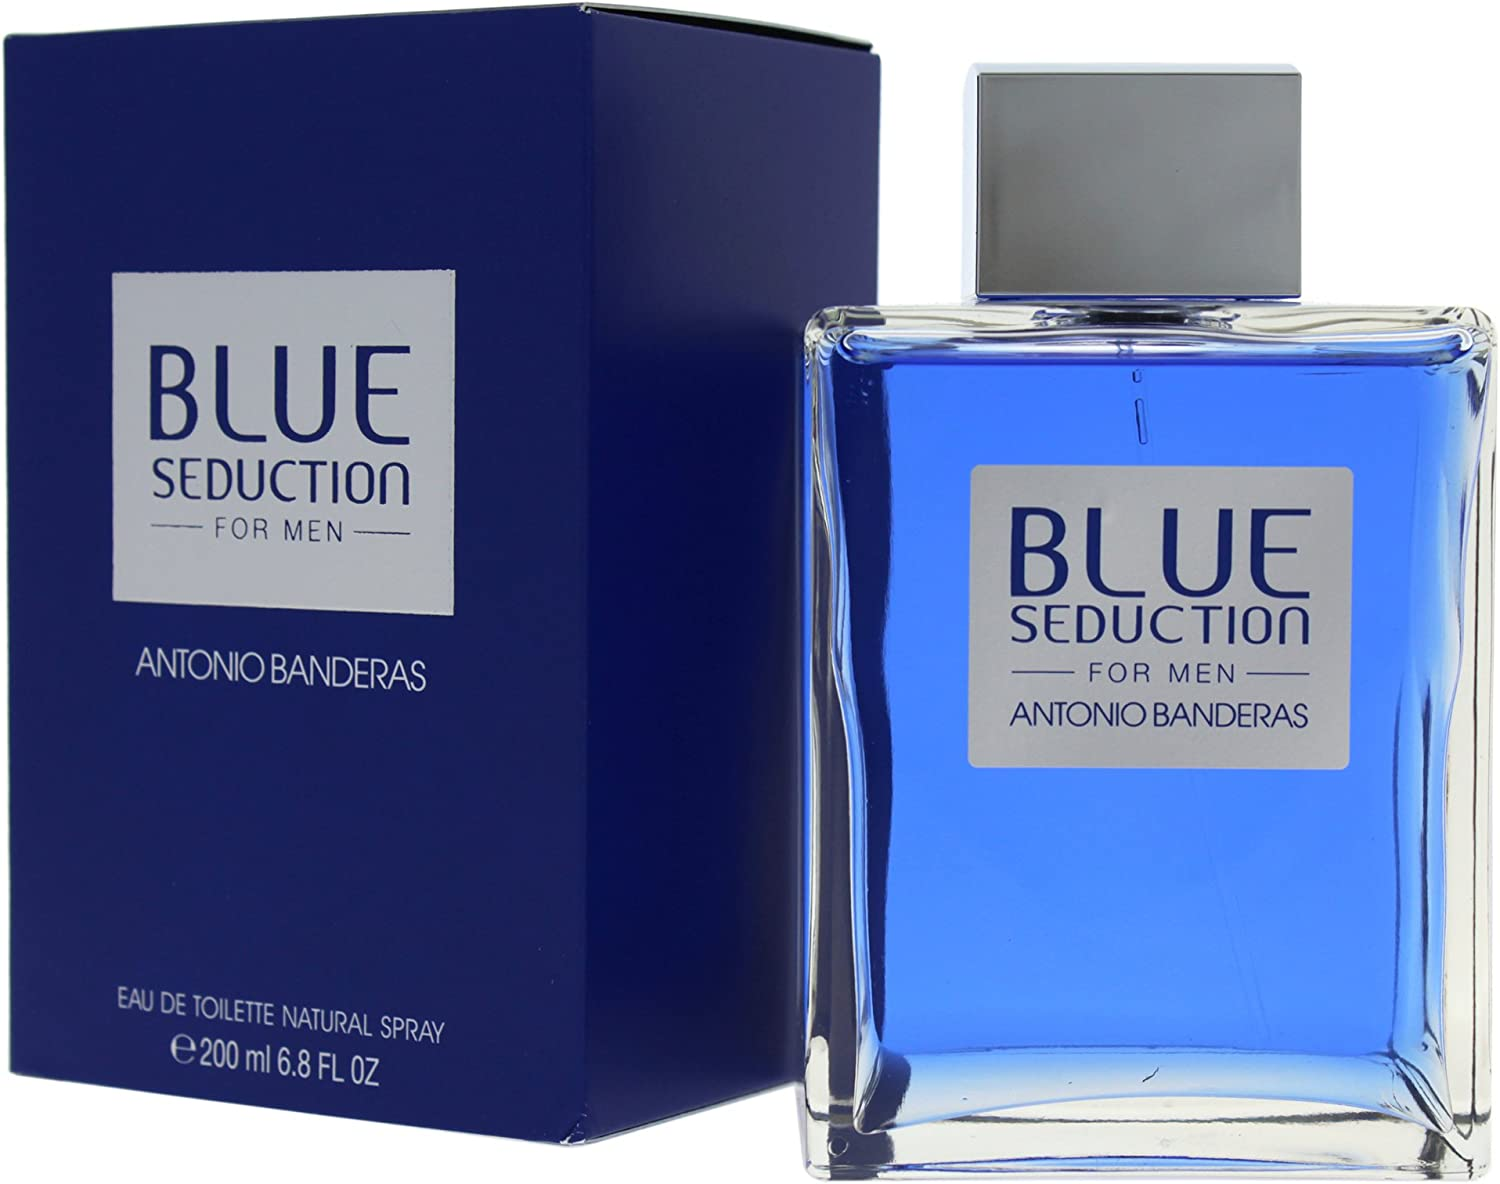 Antonio Banderas 62494 - Agua de colonia, 200 ml: Amazon.es